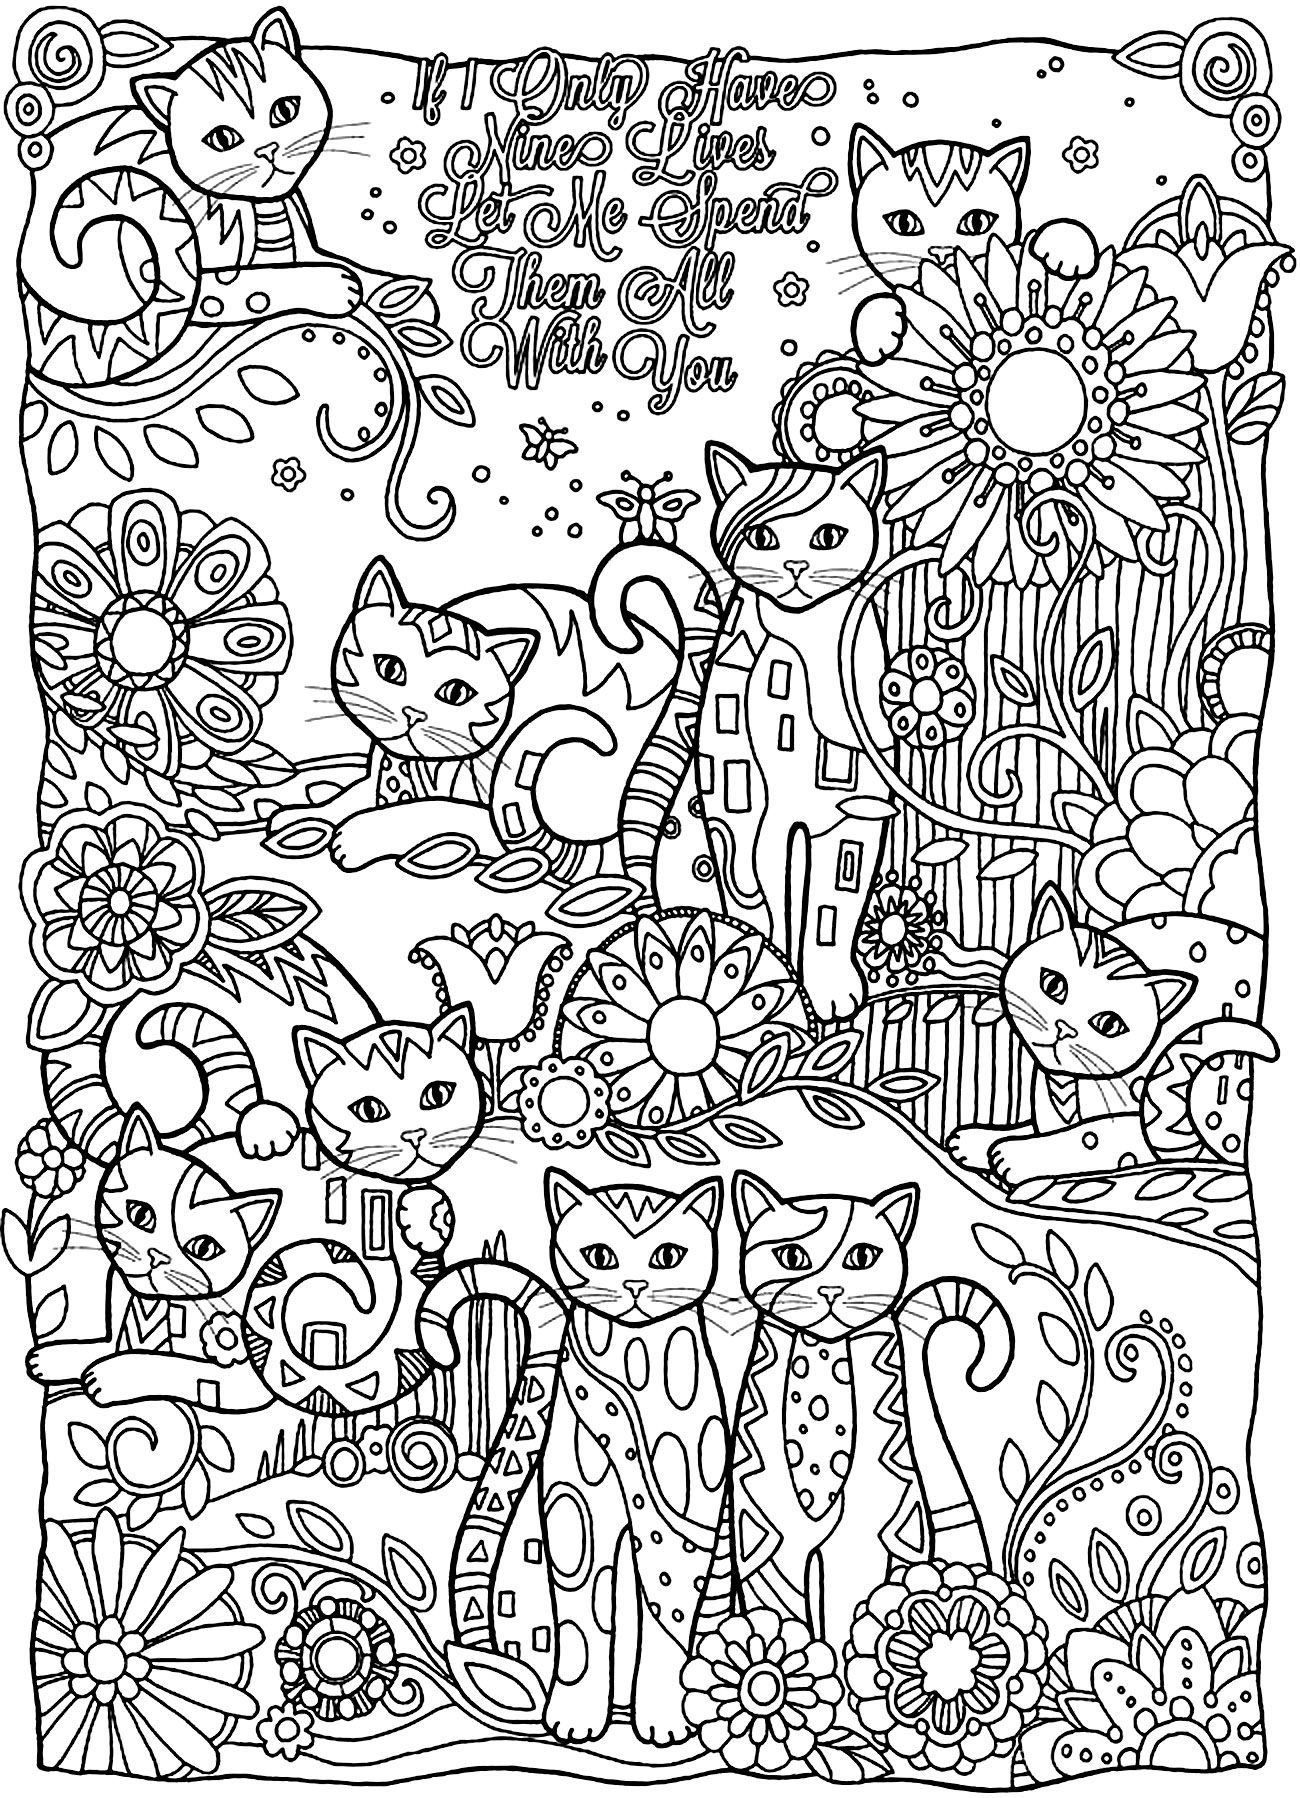 Free coloring pages for adults abstract - To Print This Free Coloring Page Coloring Adult Cats Cutes